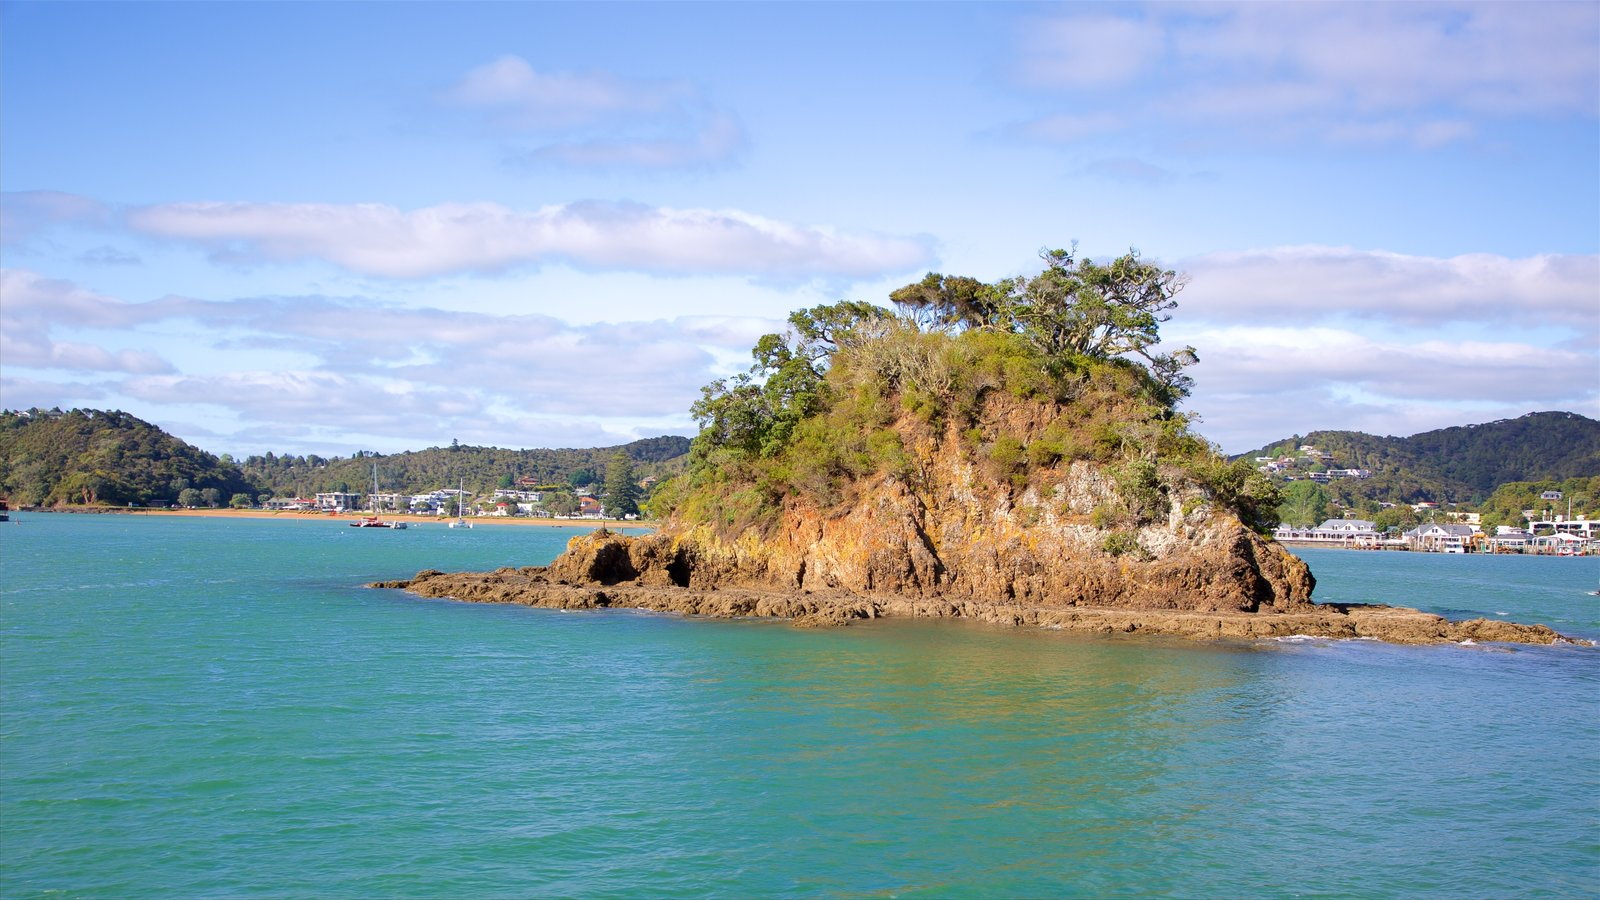 Paihia which includes rugged coastline and a bay or harbor